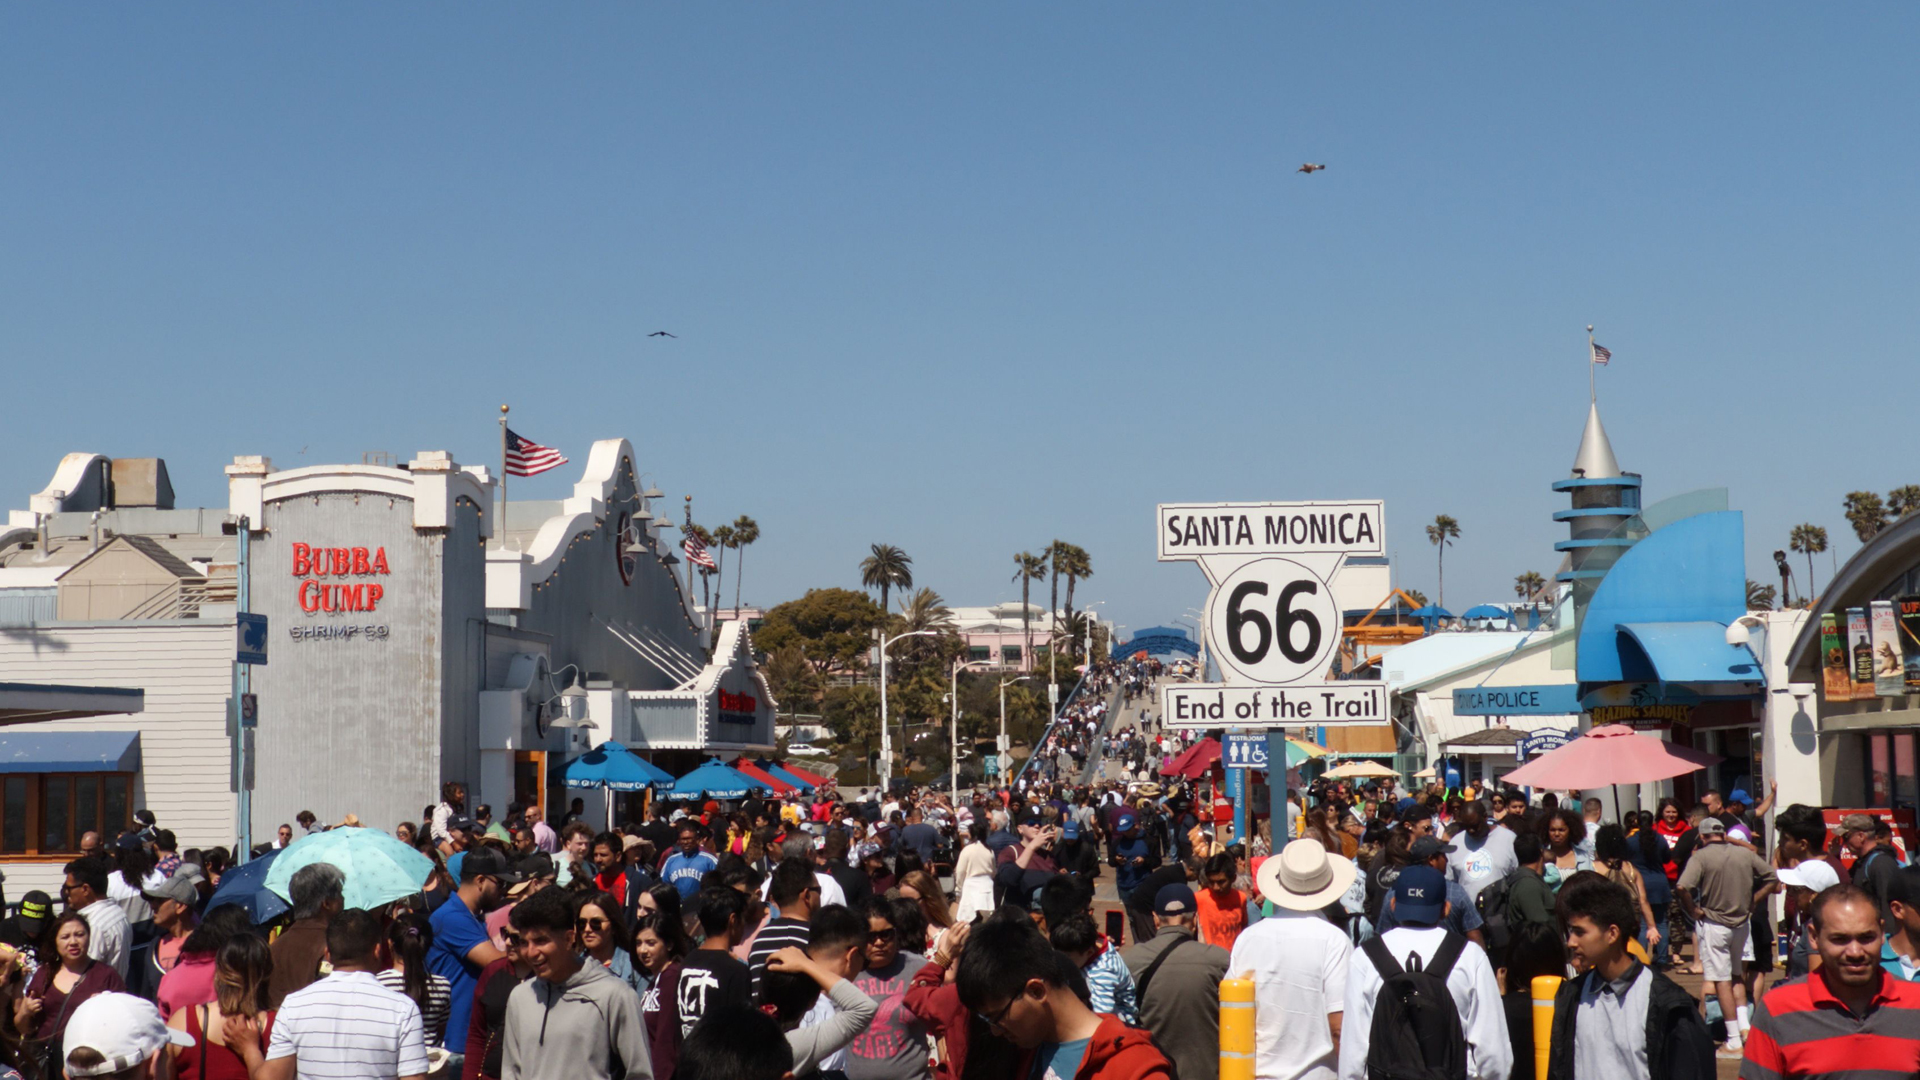 A sign marking the terminus of the historic Route 66 stands in the middle of tourists at Santa Monica Pier on April 21, 2019. (Credit: Daniel Slim / AFP / Getty Images)